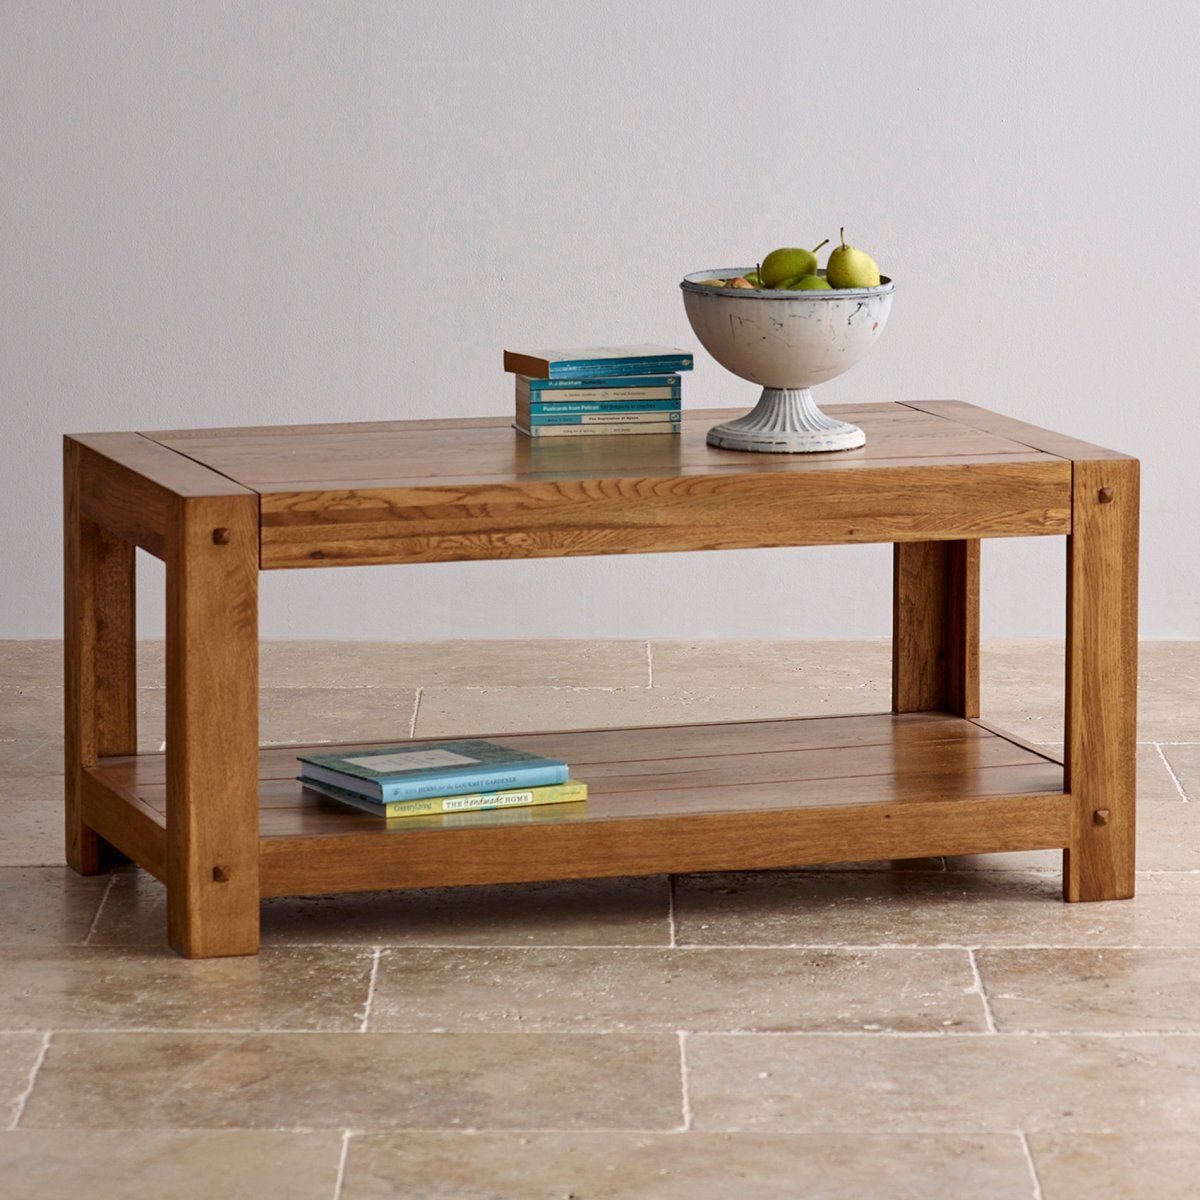 Quercus coffee table in rustic solid oak oak furniture land for Furniture land